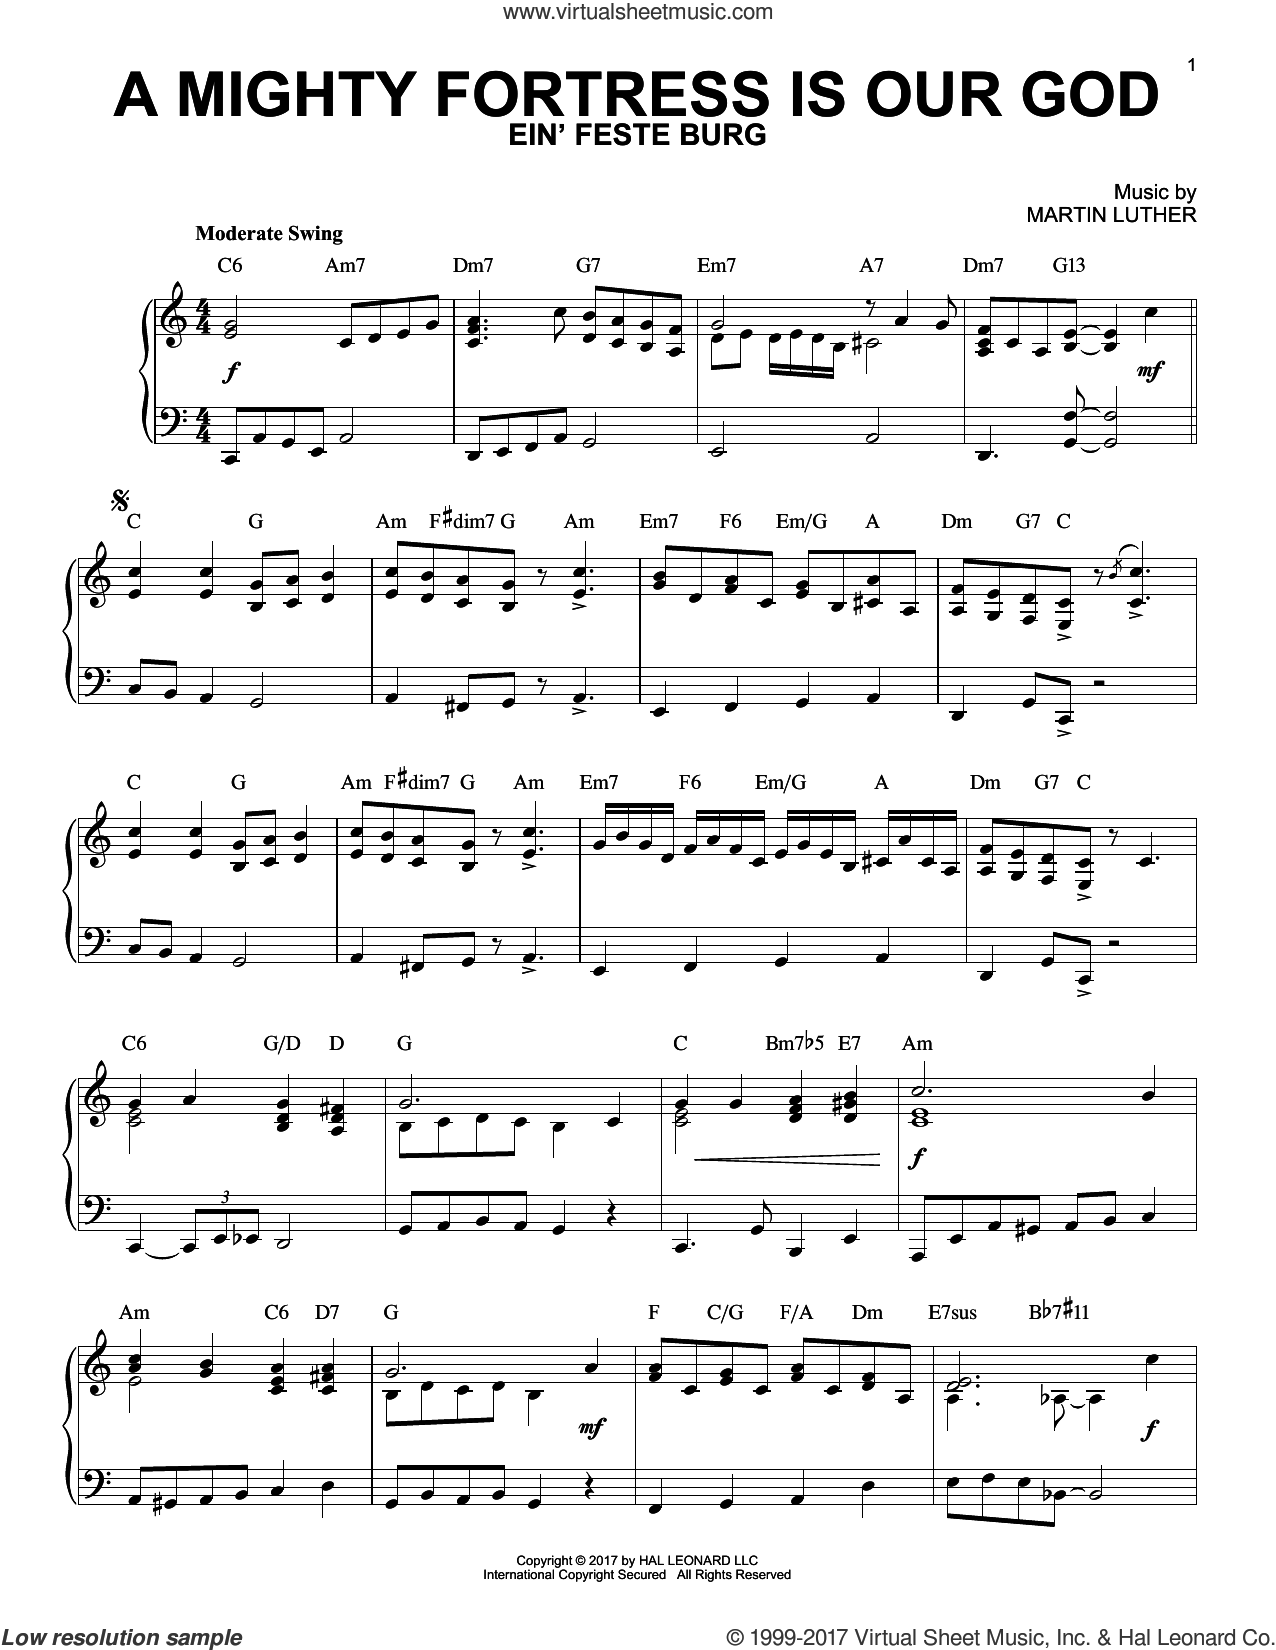 A Mighty Fortress Is Our God sheet music for piano solo by Frederick H. Hedge, Martin Luther and Miscellaneous, intermediate skill level